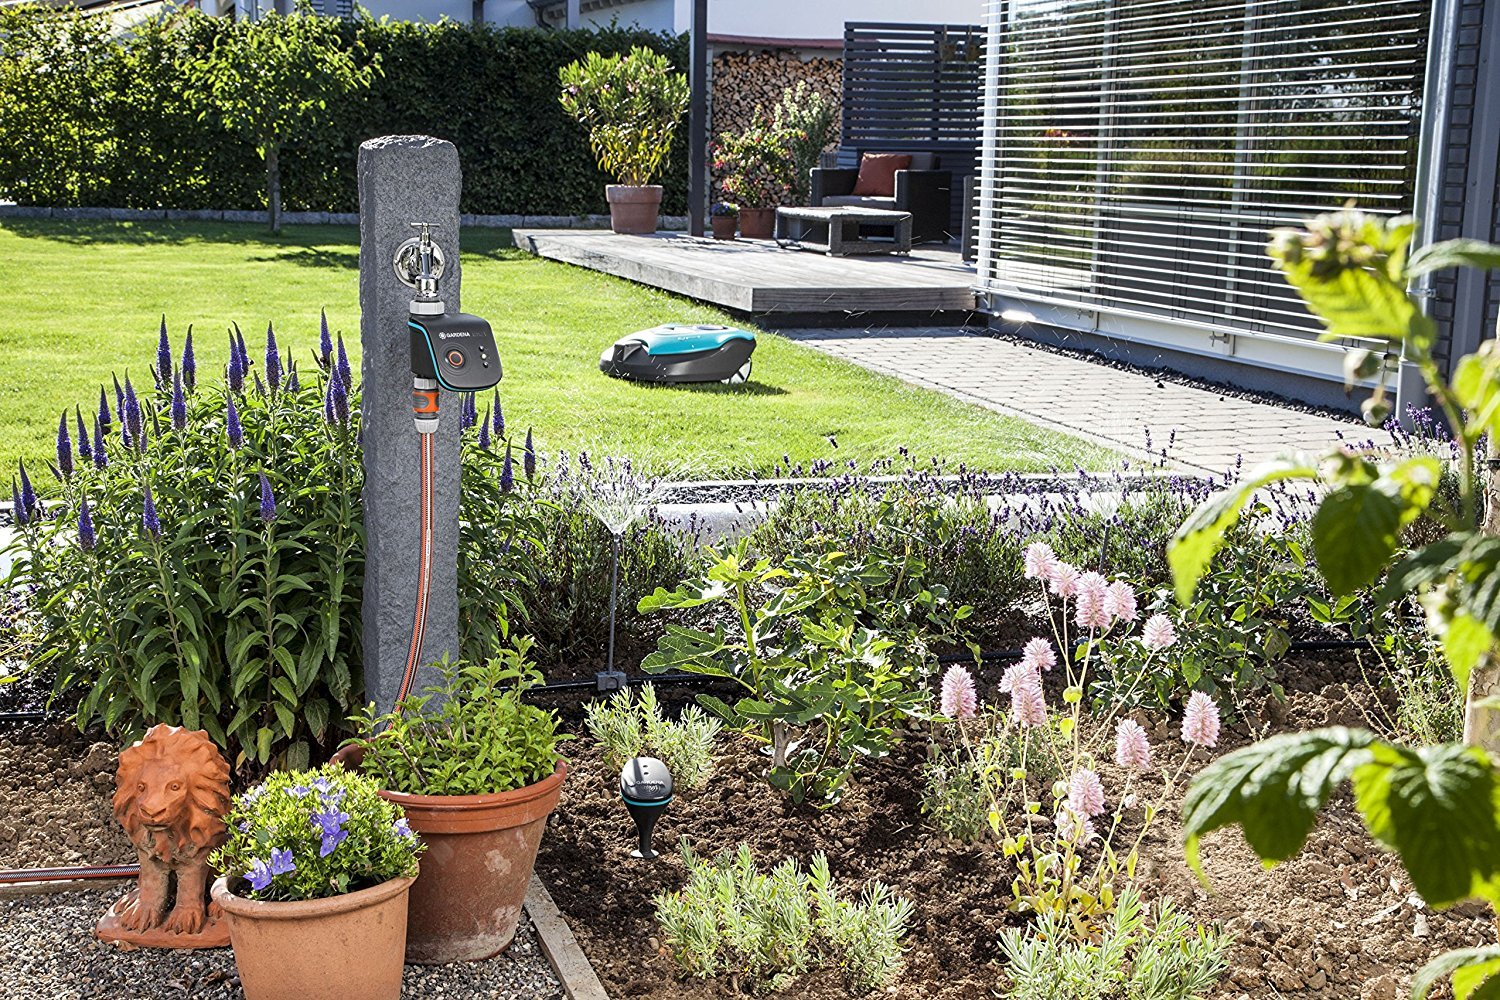 Gardena Smart System: The Future of Watering, Automated Lawn Care